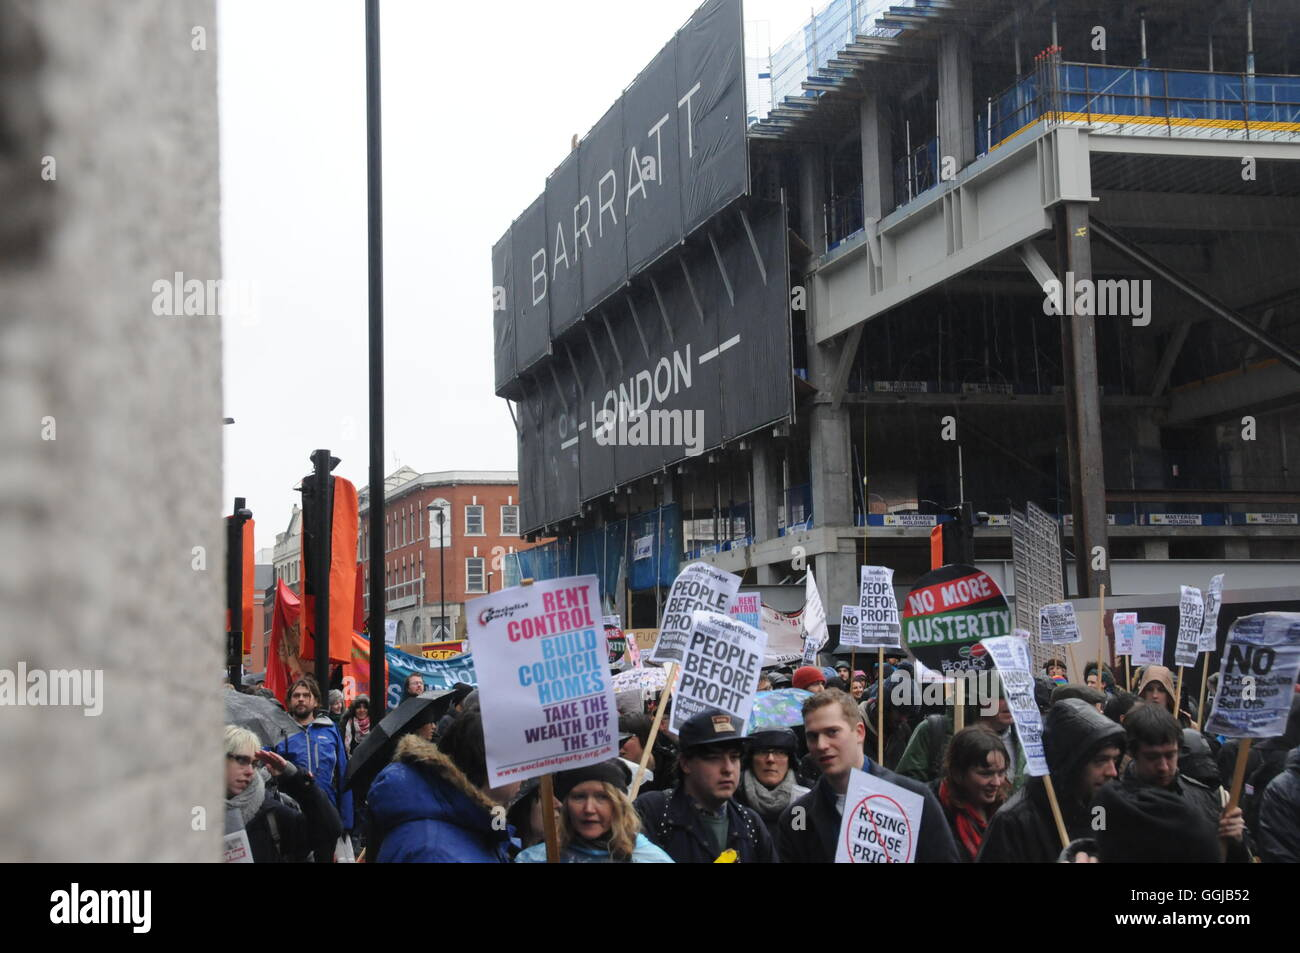 The March to London's City Hall, in protest at the lack of affordable rented housing for London's workers. - Stock Image